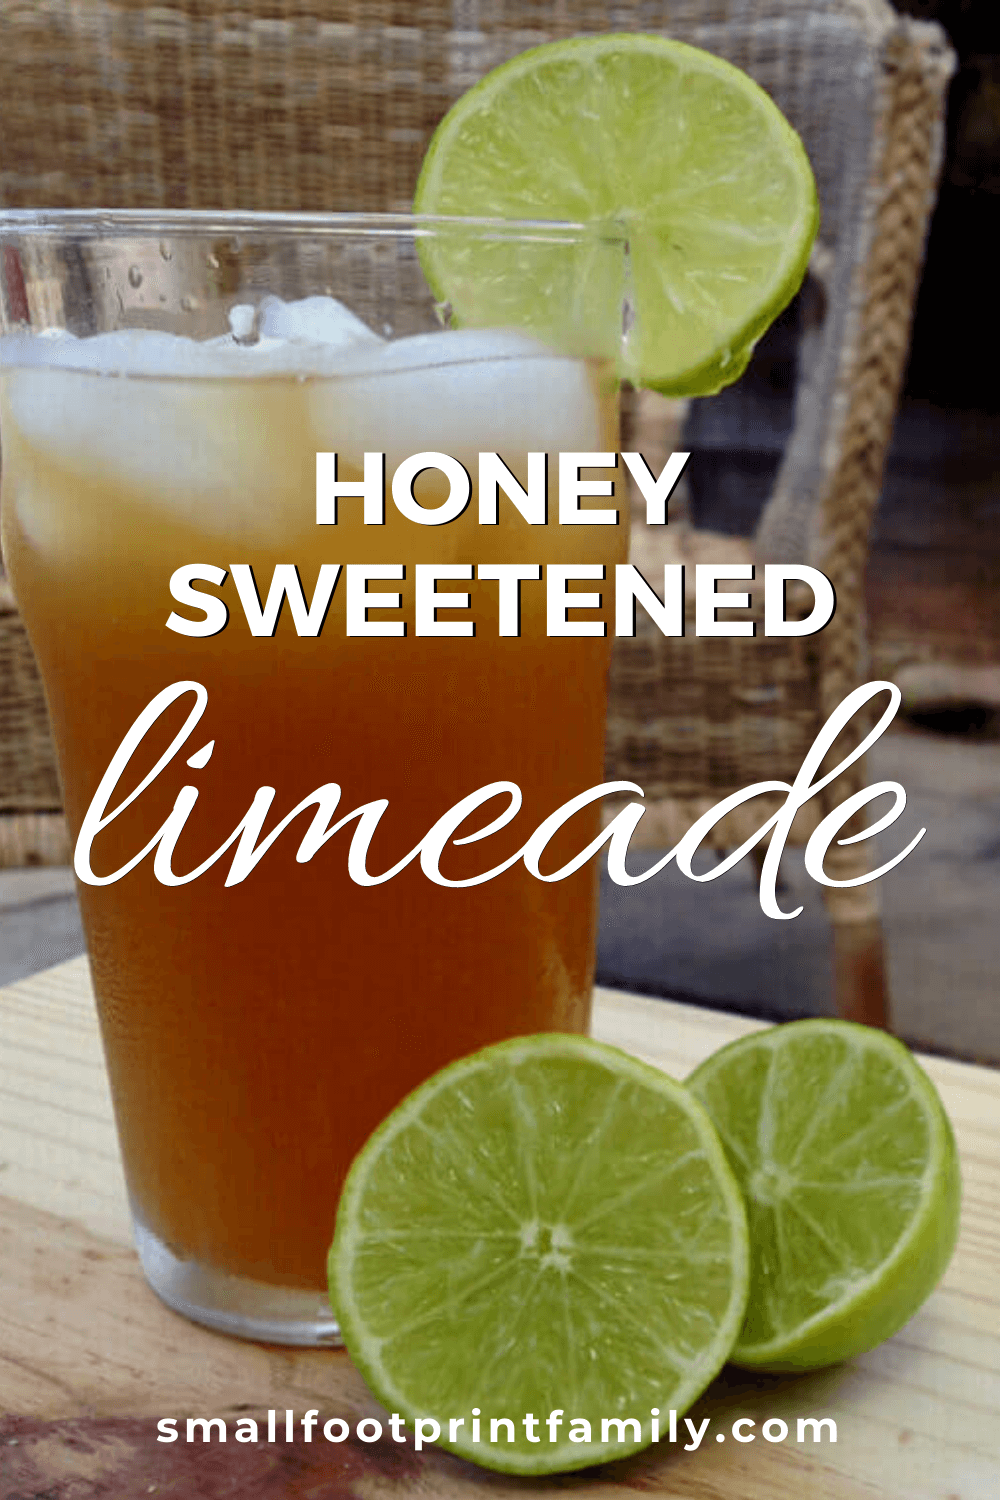 This refreshing honey limeade recipe is the perfect, crisp and delicious beverage to beat the end of summer heat. You can also sweeten it with stevia!#paleo #paleodiet #glutenfree #dairyfree #vegan #vegetarian #rawvegan #recipe #beverage #realfood